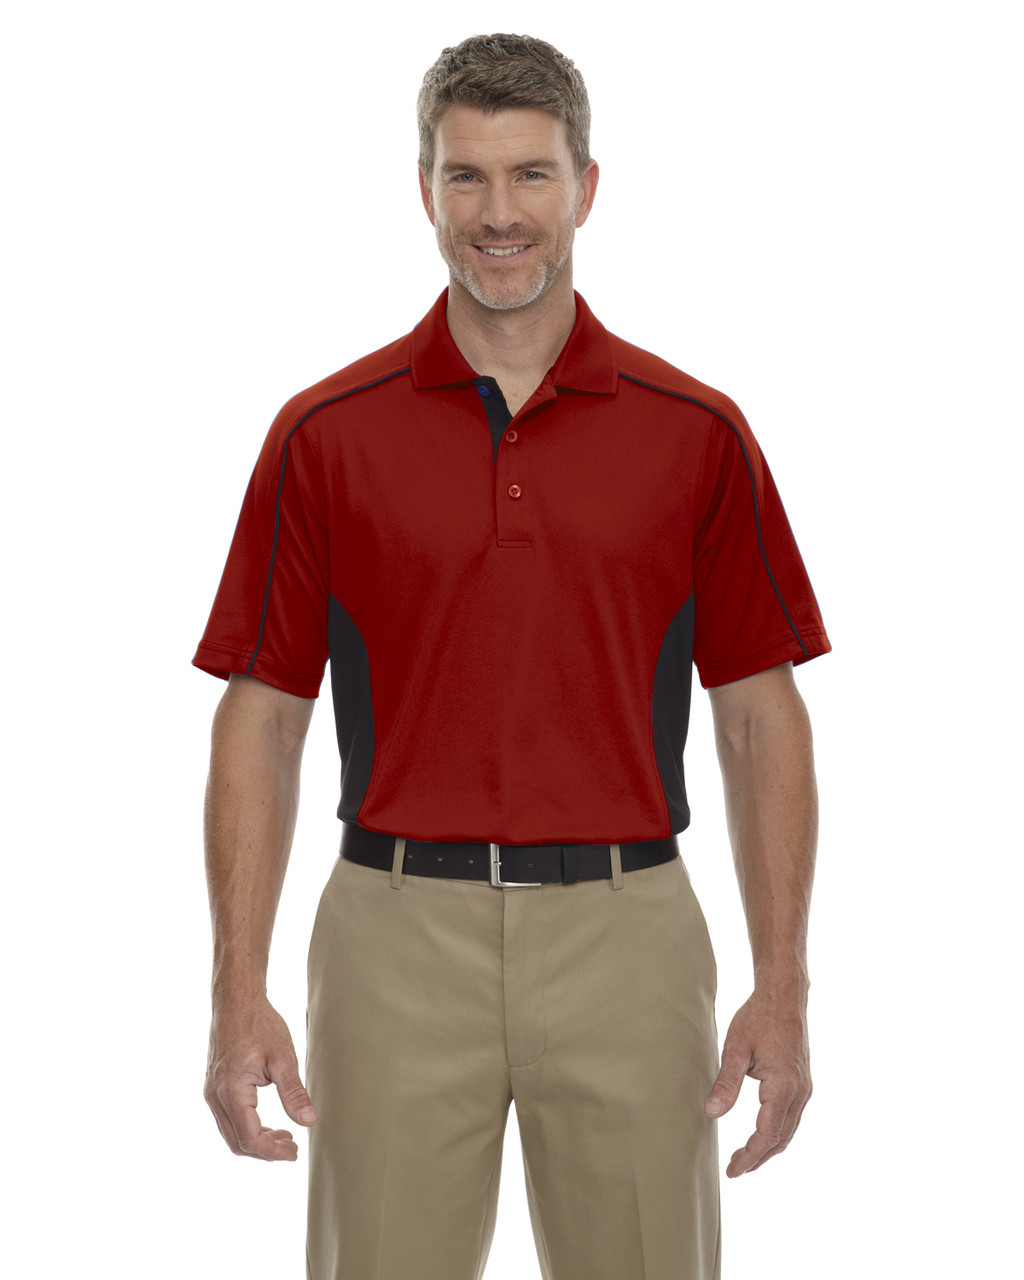 Classic Red - 85113 Ash City - Extreme Eperformance Men's Plus Colourblock Polo Shirt